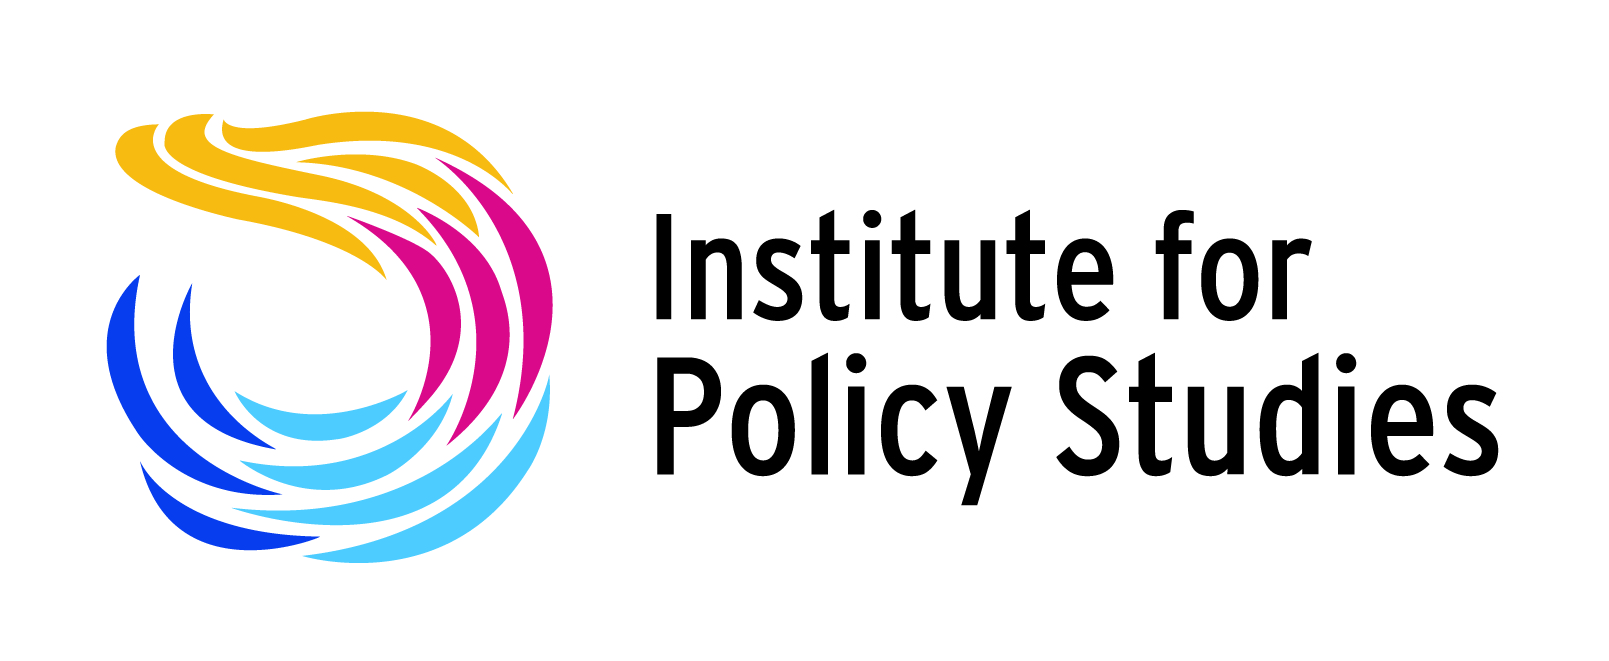 Institute for Policy Studies Logo.